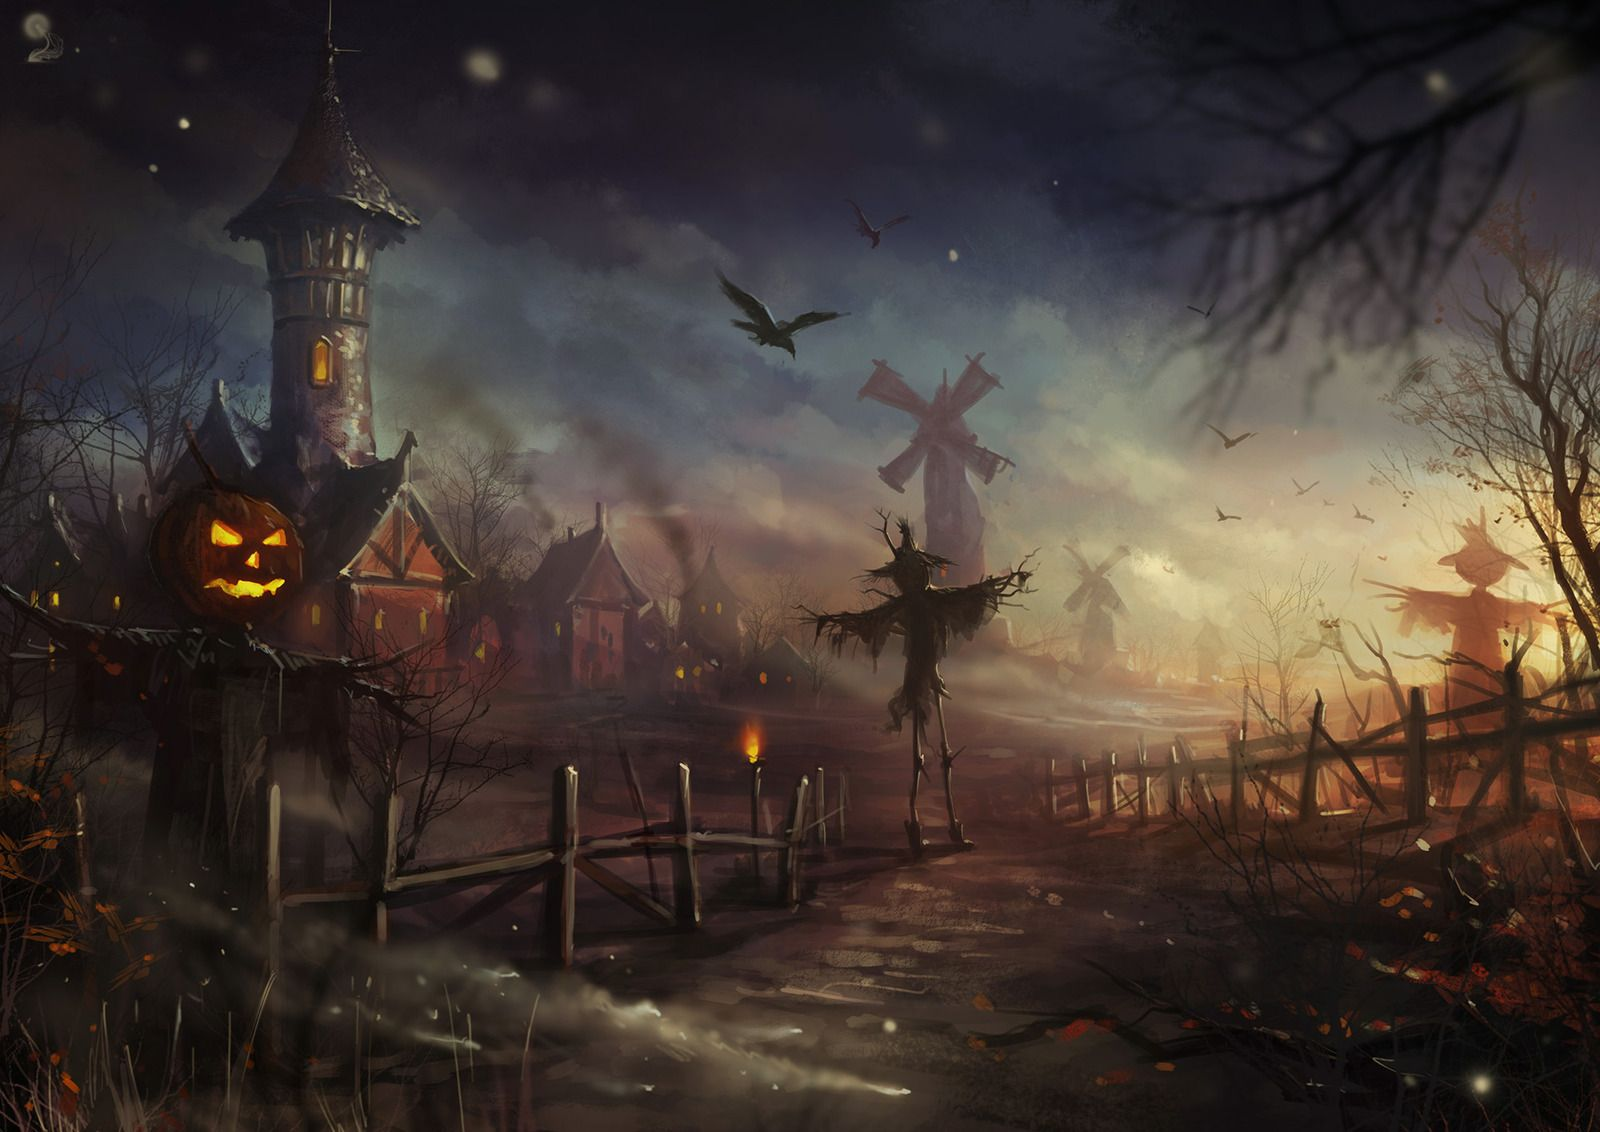 halloween picture questions